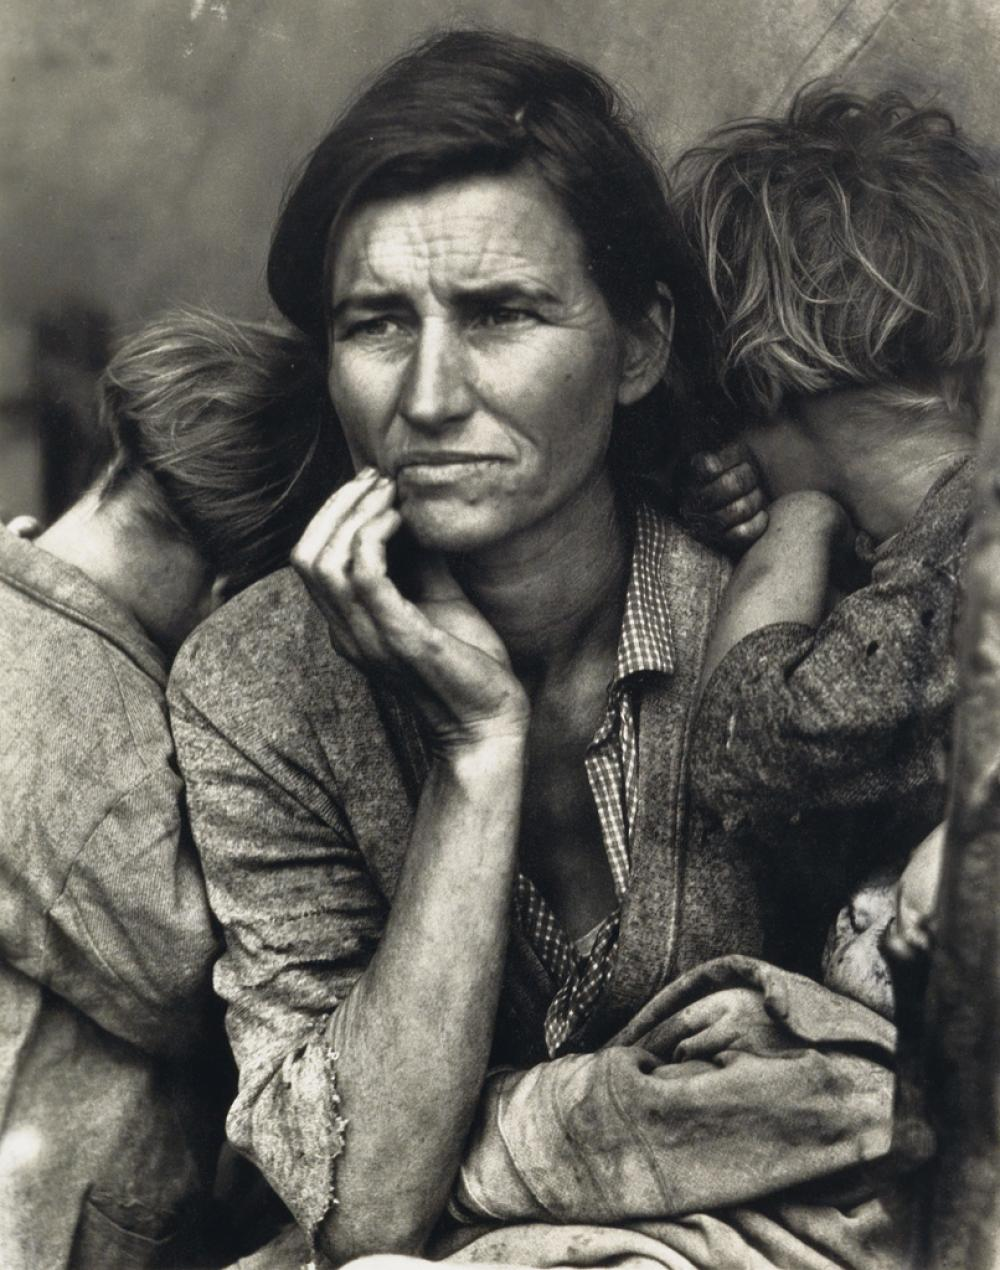 (FARM SECURITY ADMINISTRATION) A portfolio of 10 photographs by Dorothea Lange, Walker Evans, Ben Shahn, and Arthur Rothstein.